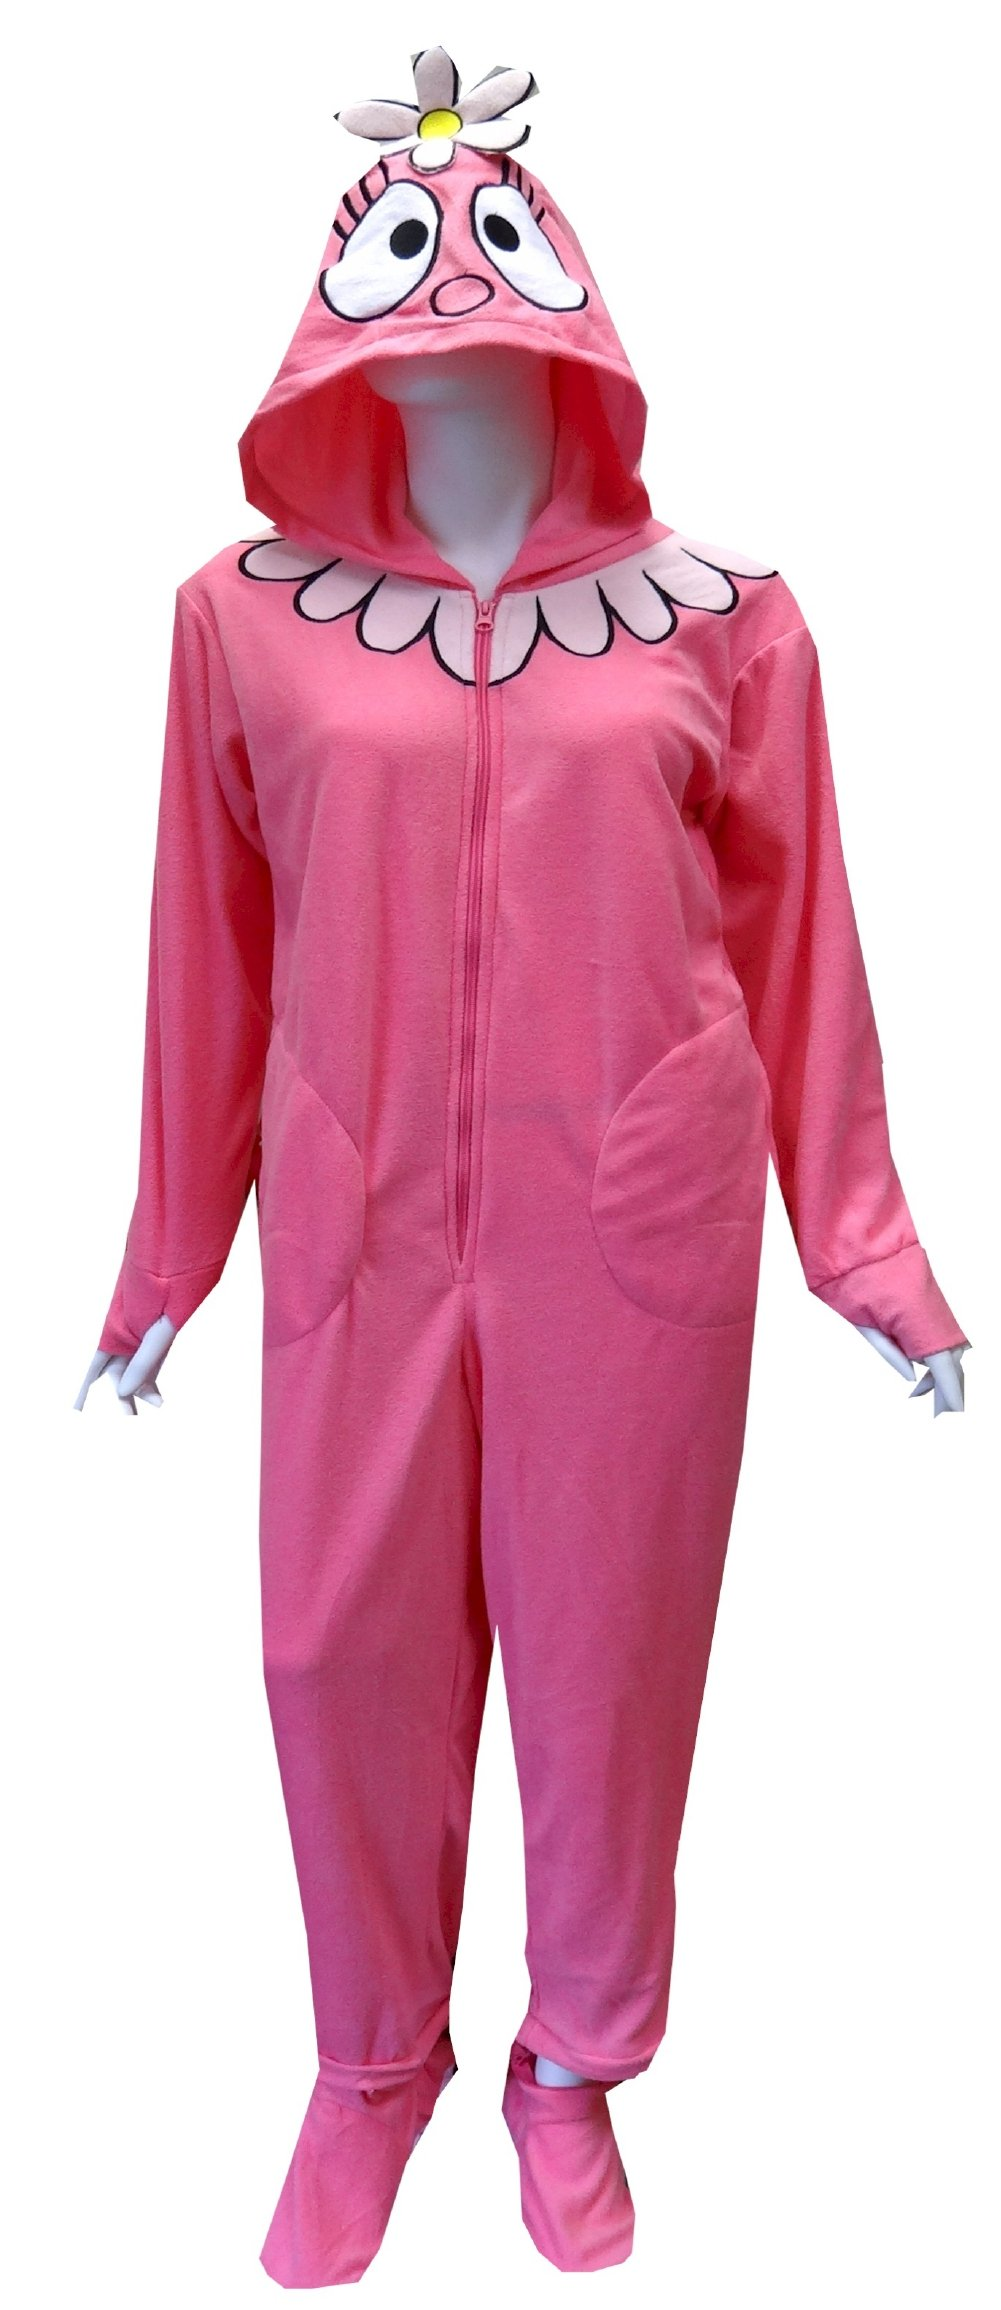 Yo Gabba Gabba Foofa Adult Footie Onesie Pajamas for women